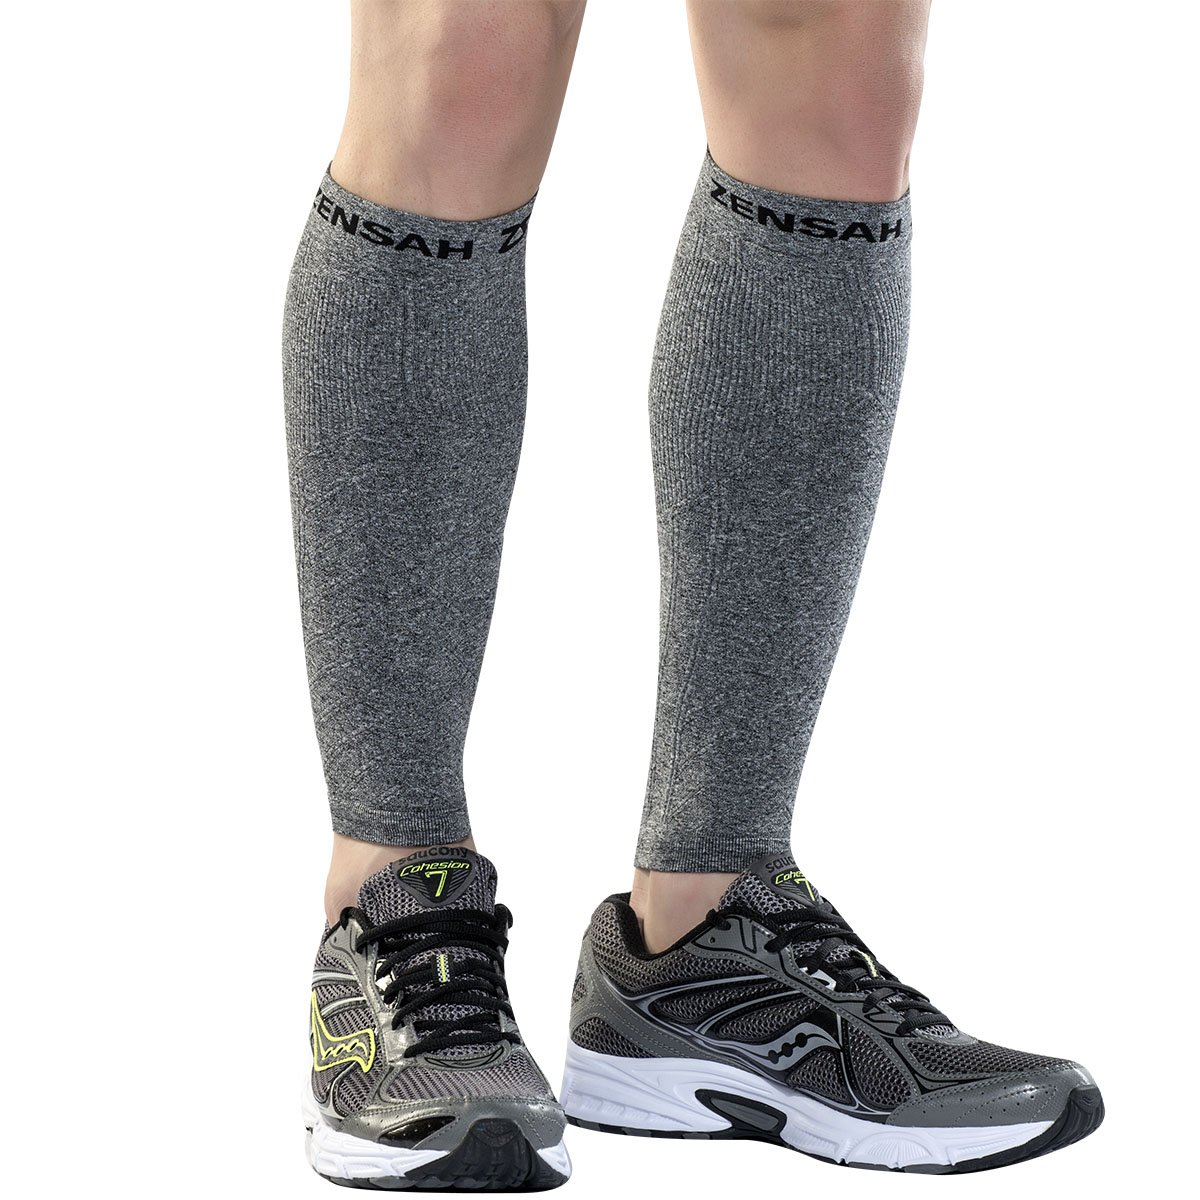 Zensah Compression Leg Sleeves, Heather Grey, X-Small/Small